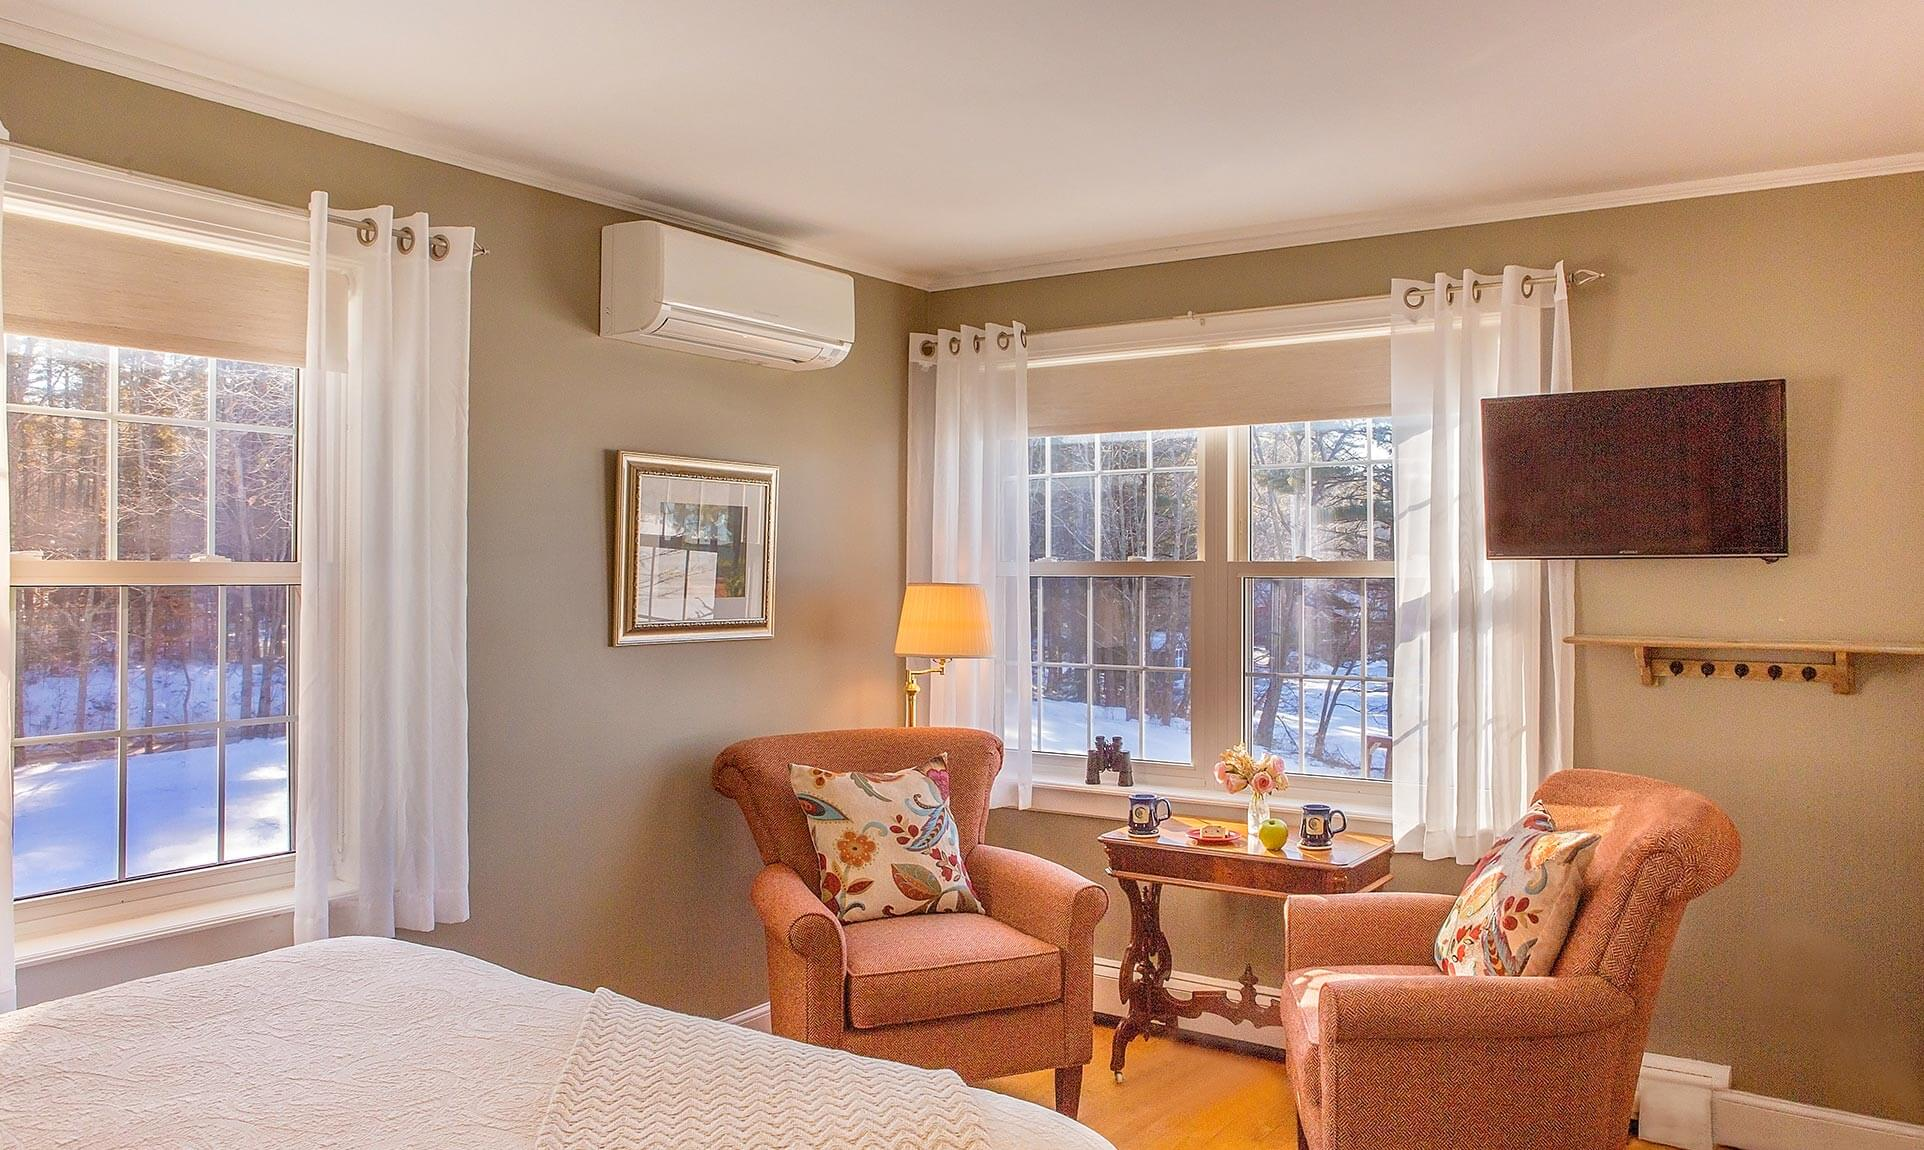 Seating area with two chairs in Sebago Lake room